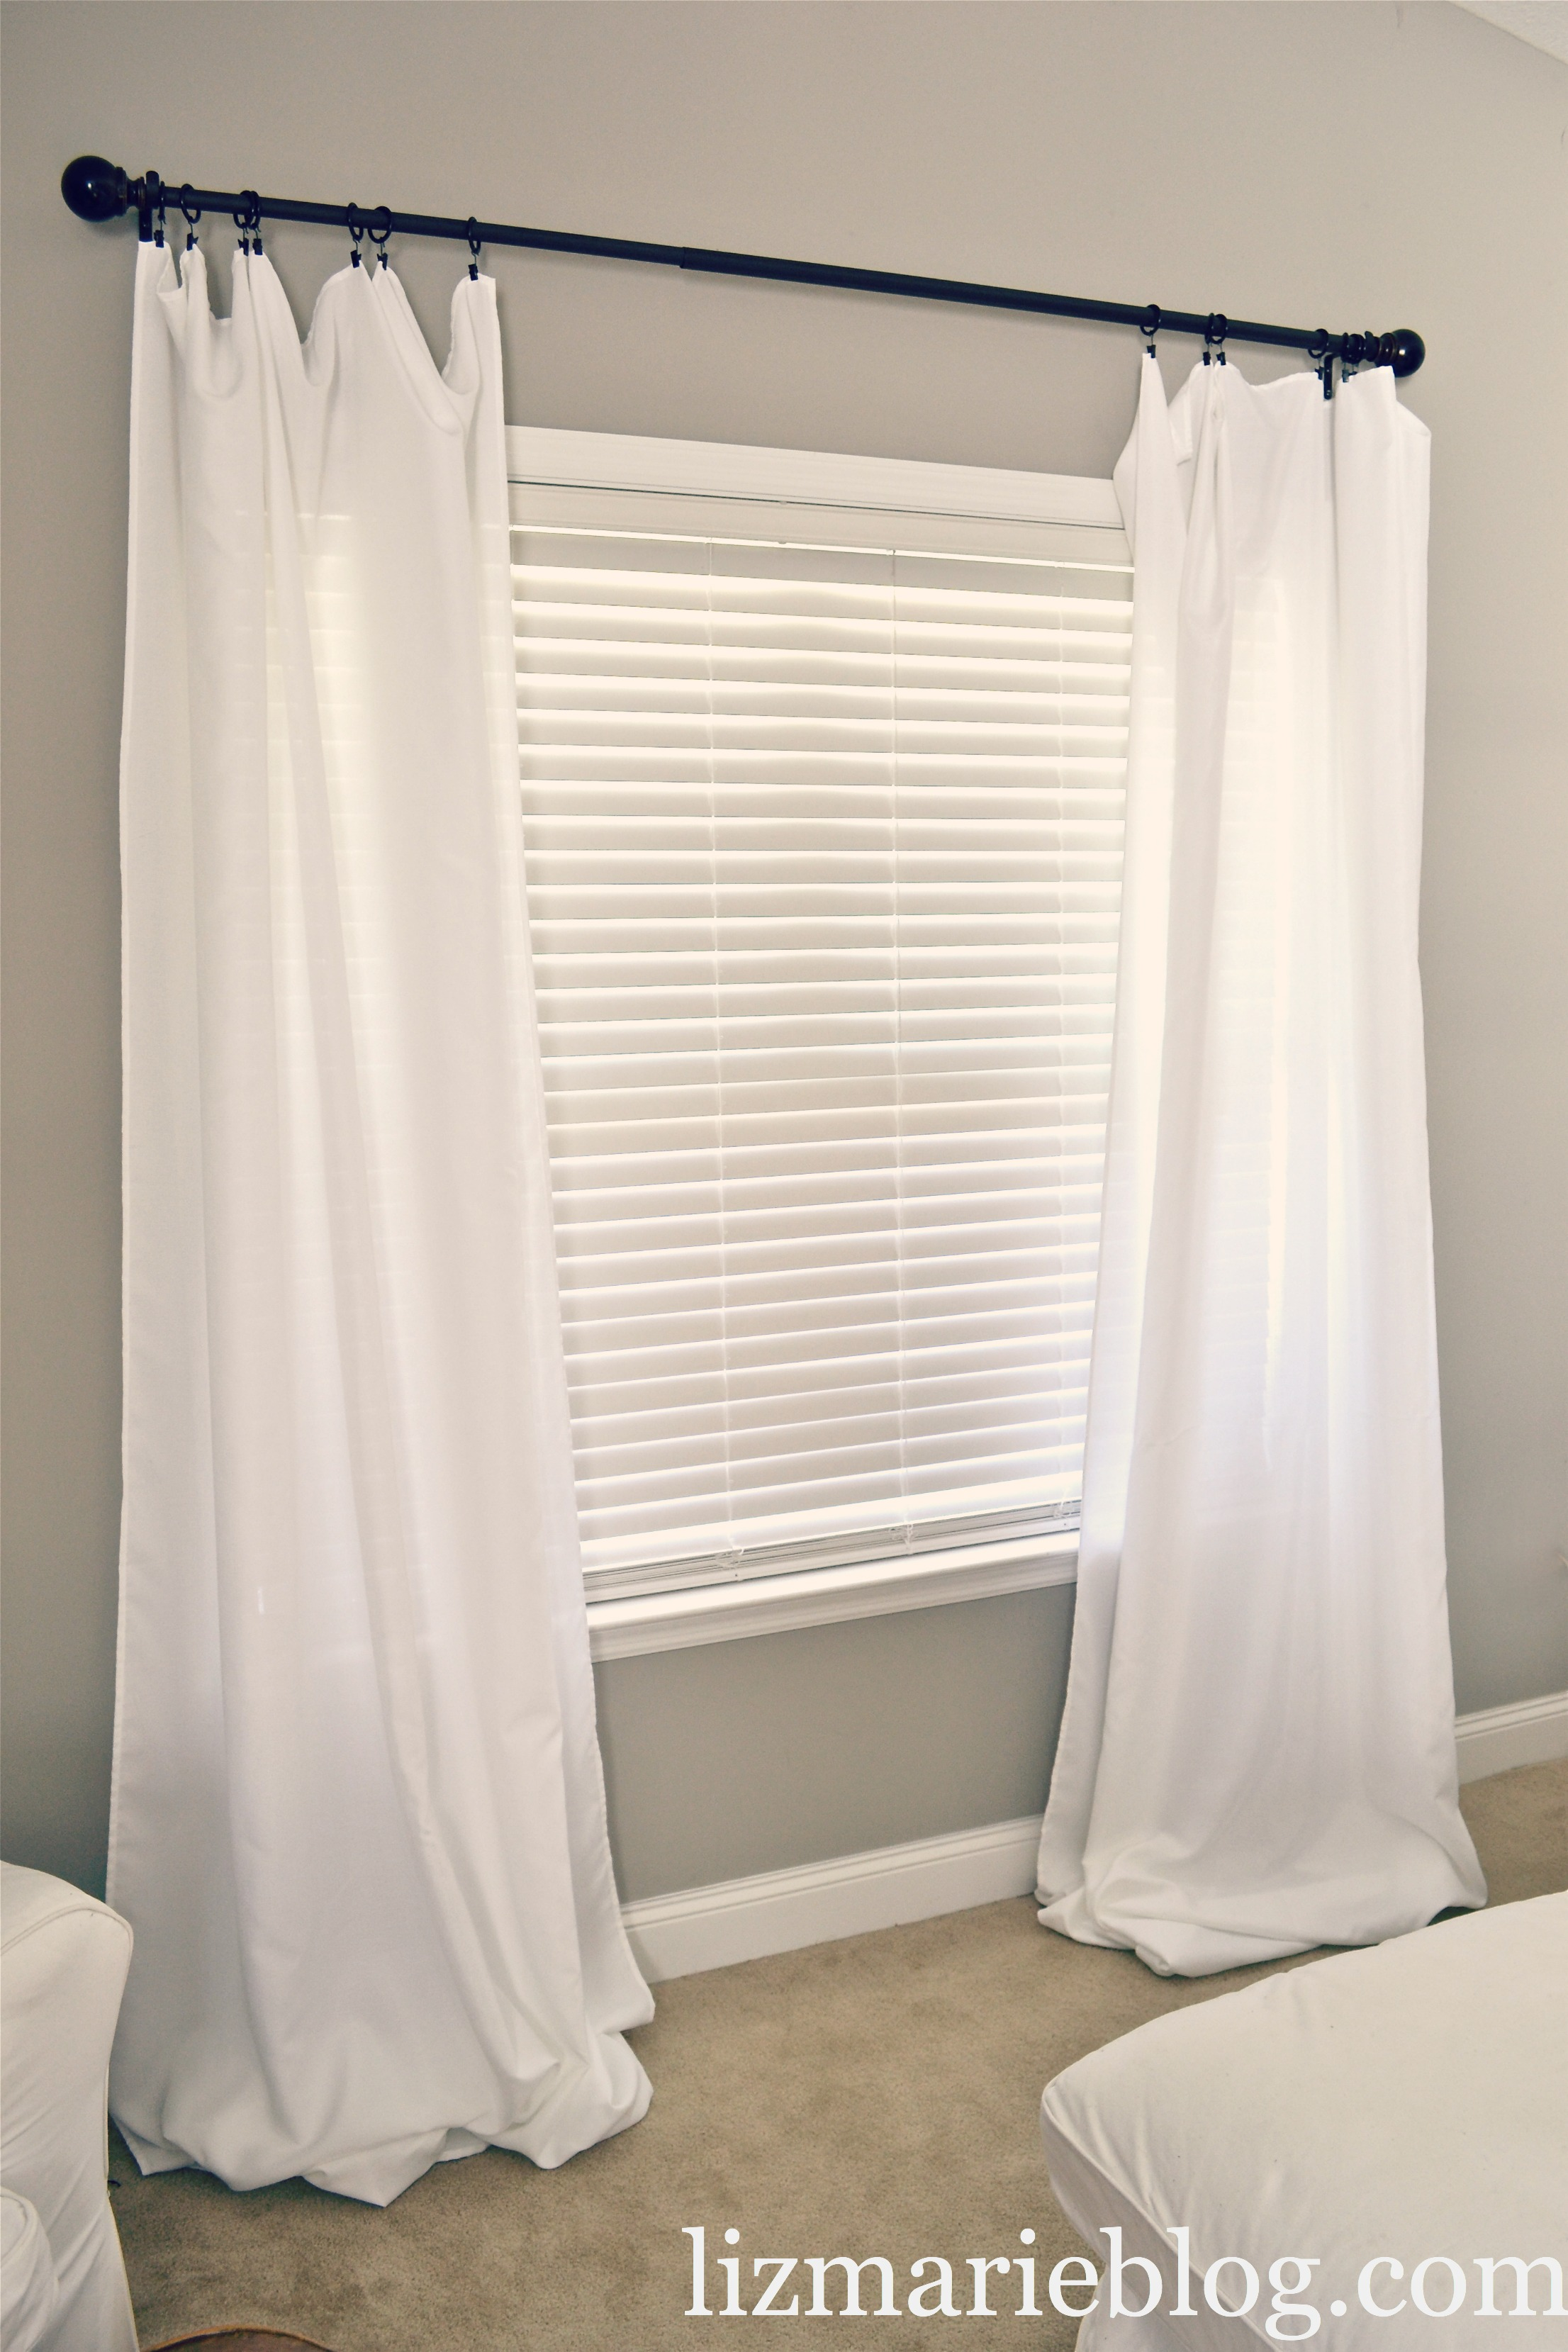 Diy Floor Length Curtains Liz Marie Blog